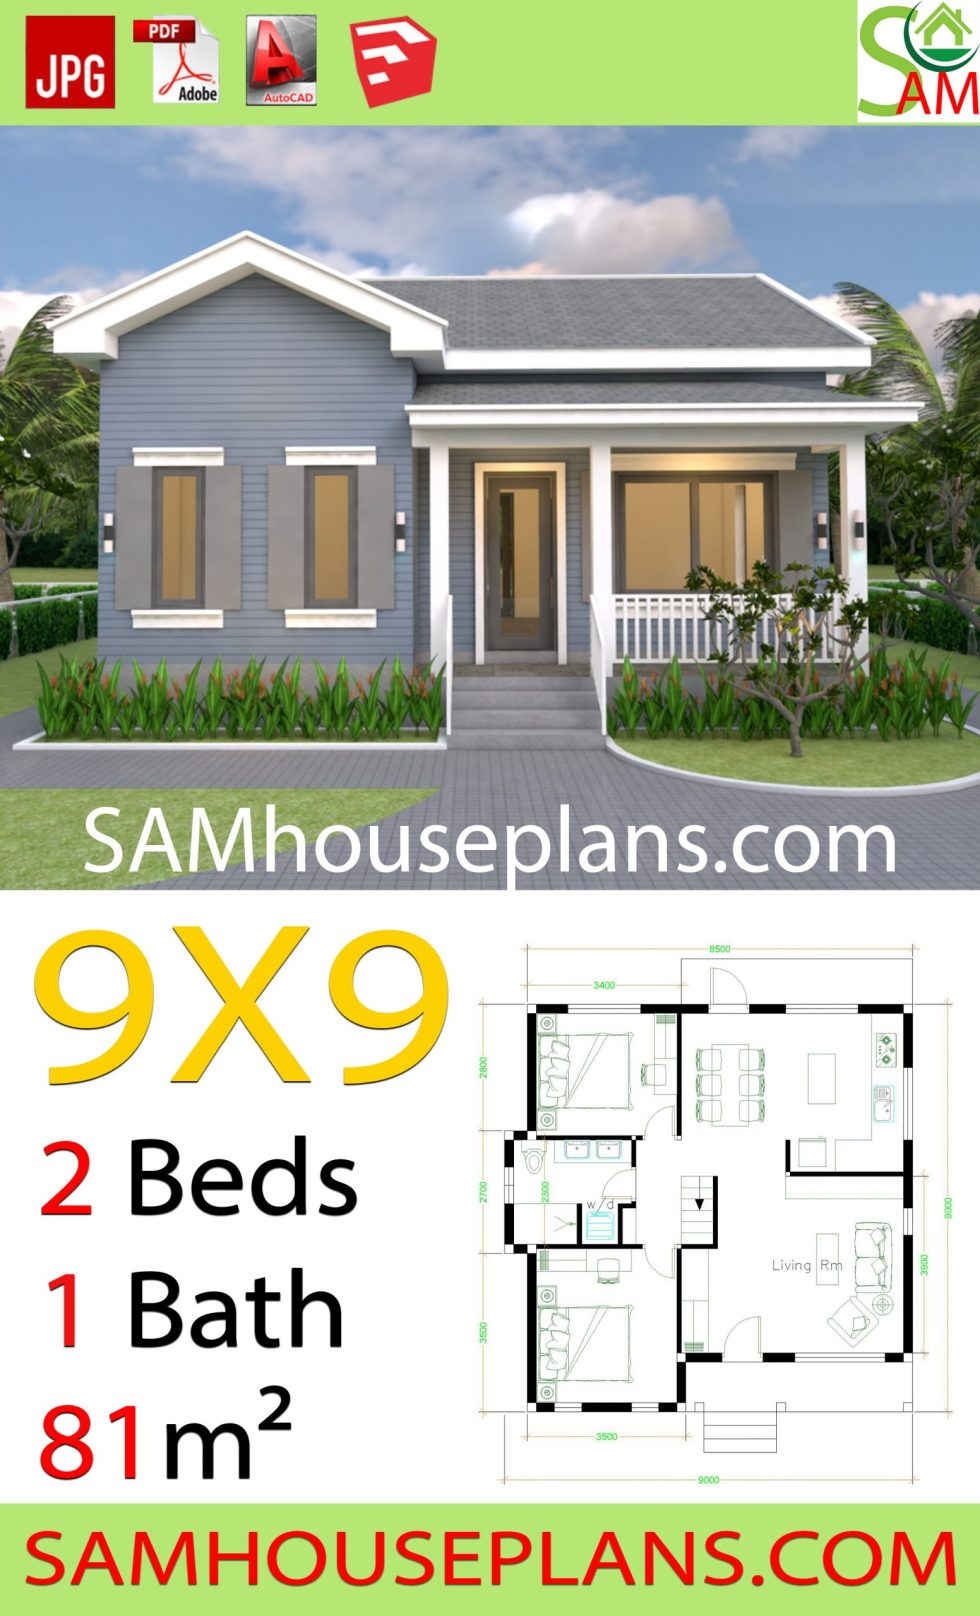 House Plans 9x9 with 2 Bedrooms Gable Roof